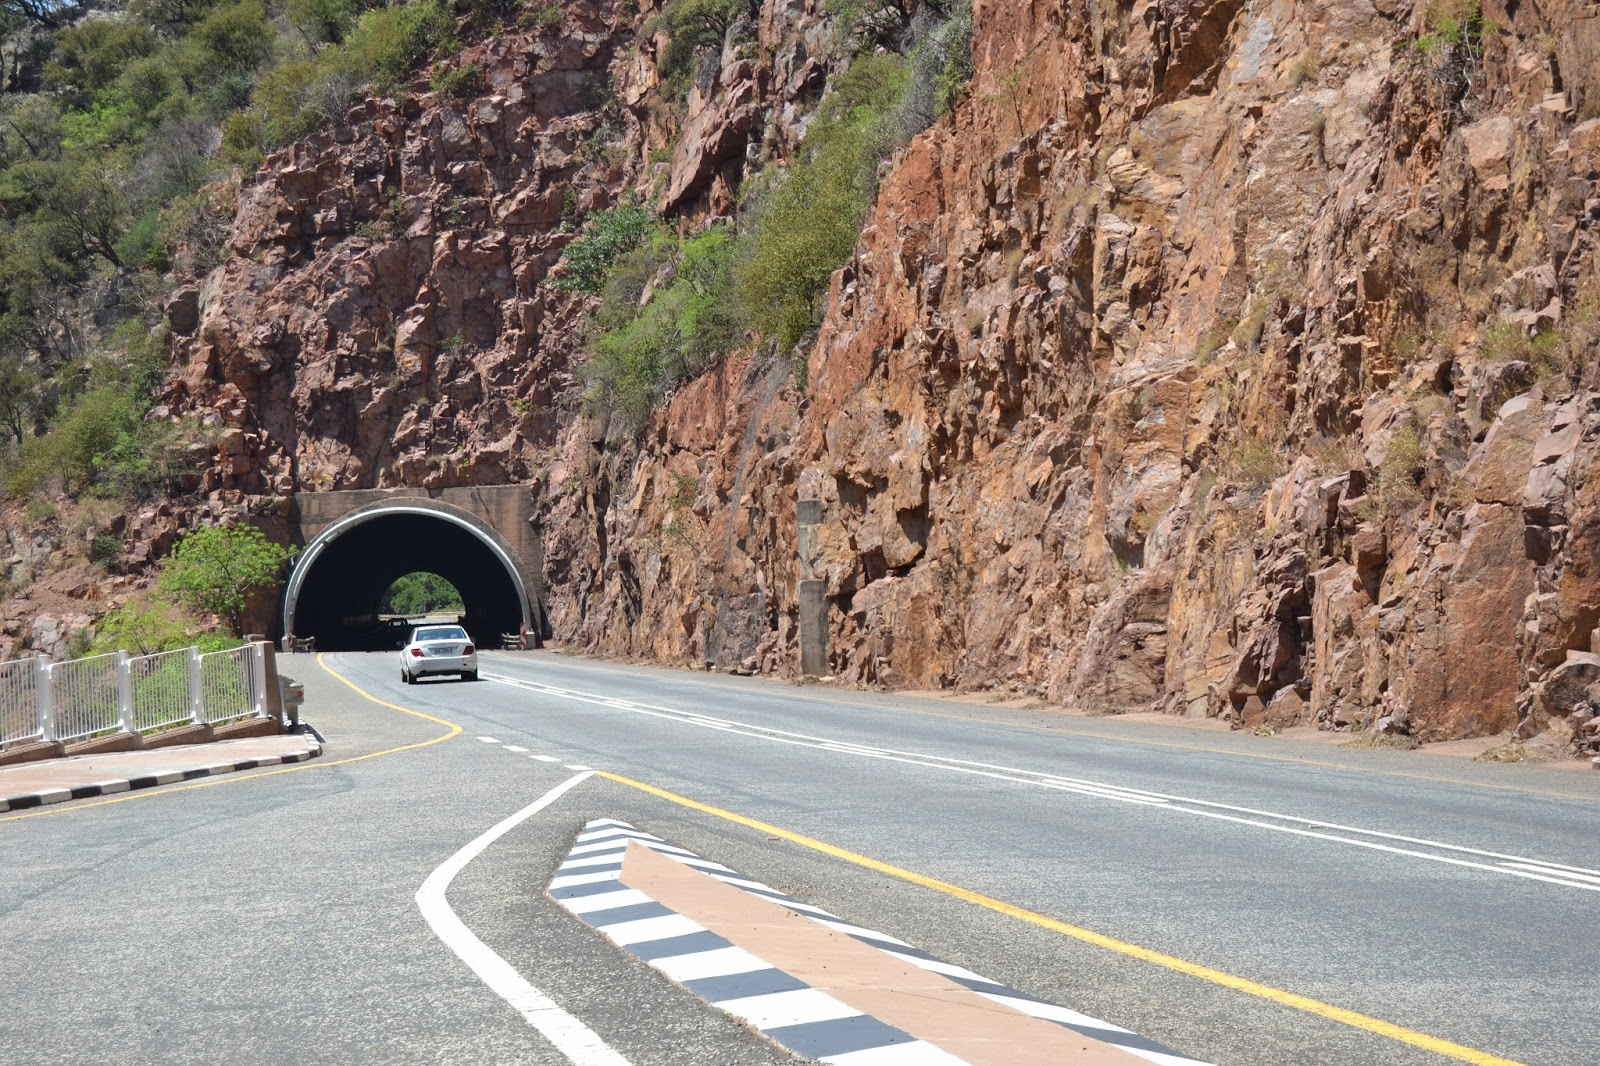 tunnel senior personals #7 in best things to do in sequoia national park the tunnel log, located along the crescent meadow road in the giant forest, offers a fun photo op for park visitors this enormous tree, which fell across the road in 1937, was 275 feet tall and 21 feet at the base when it collapsed the tunnel was.